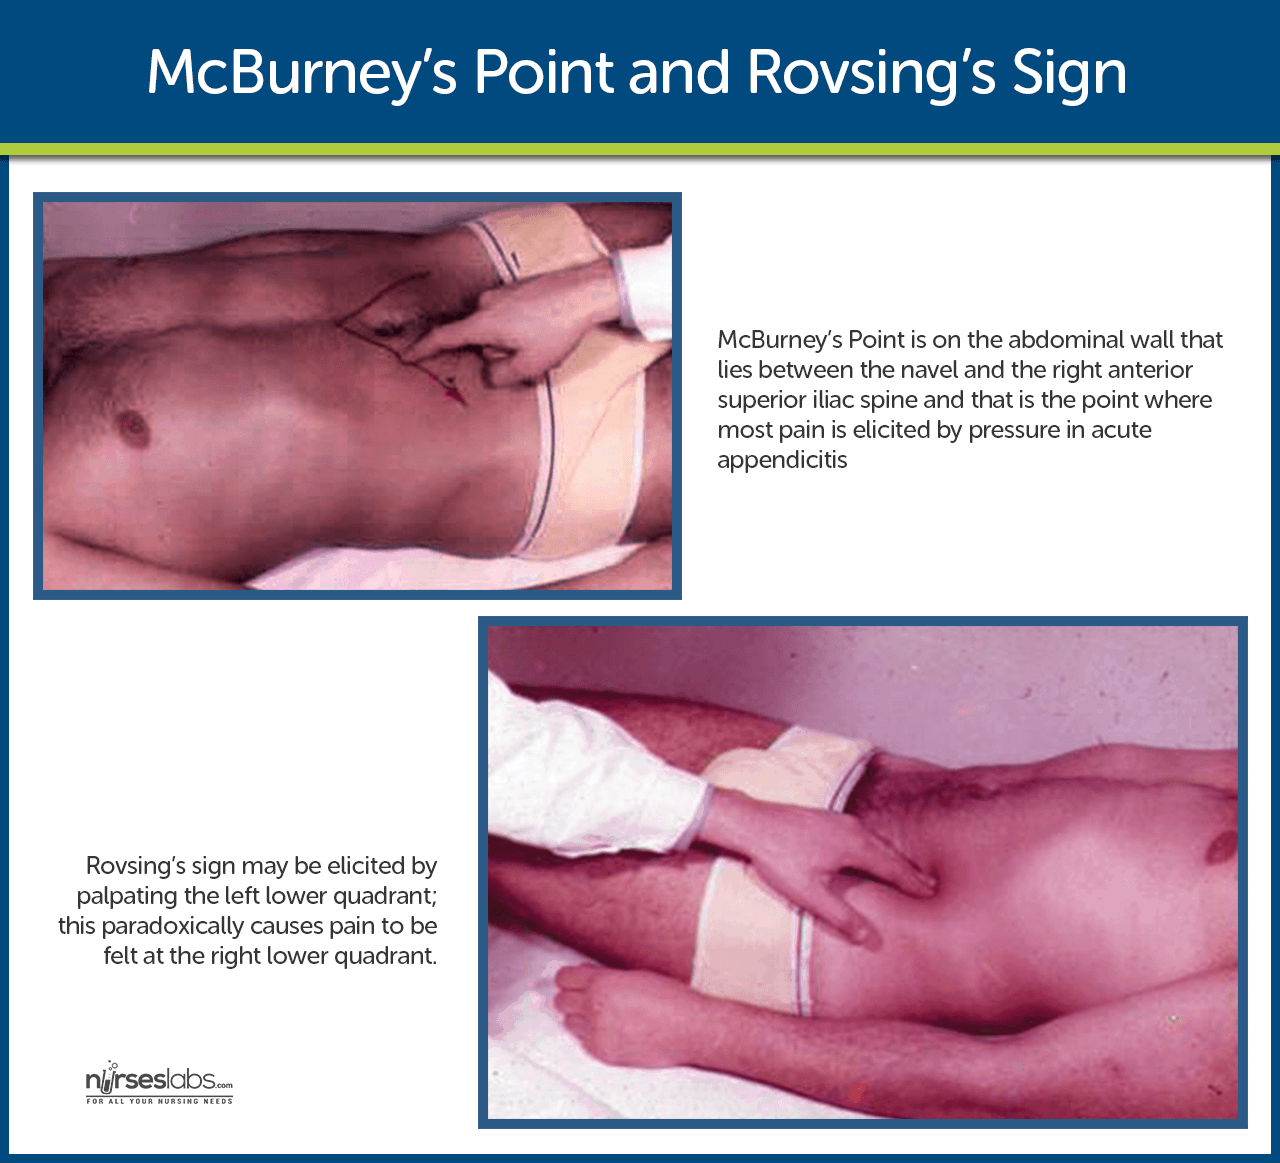 McBurney's Point and Rovsing's Sign